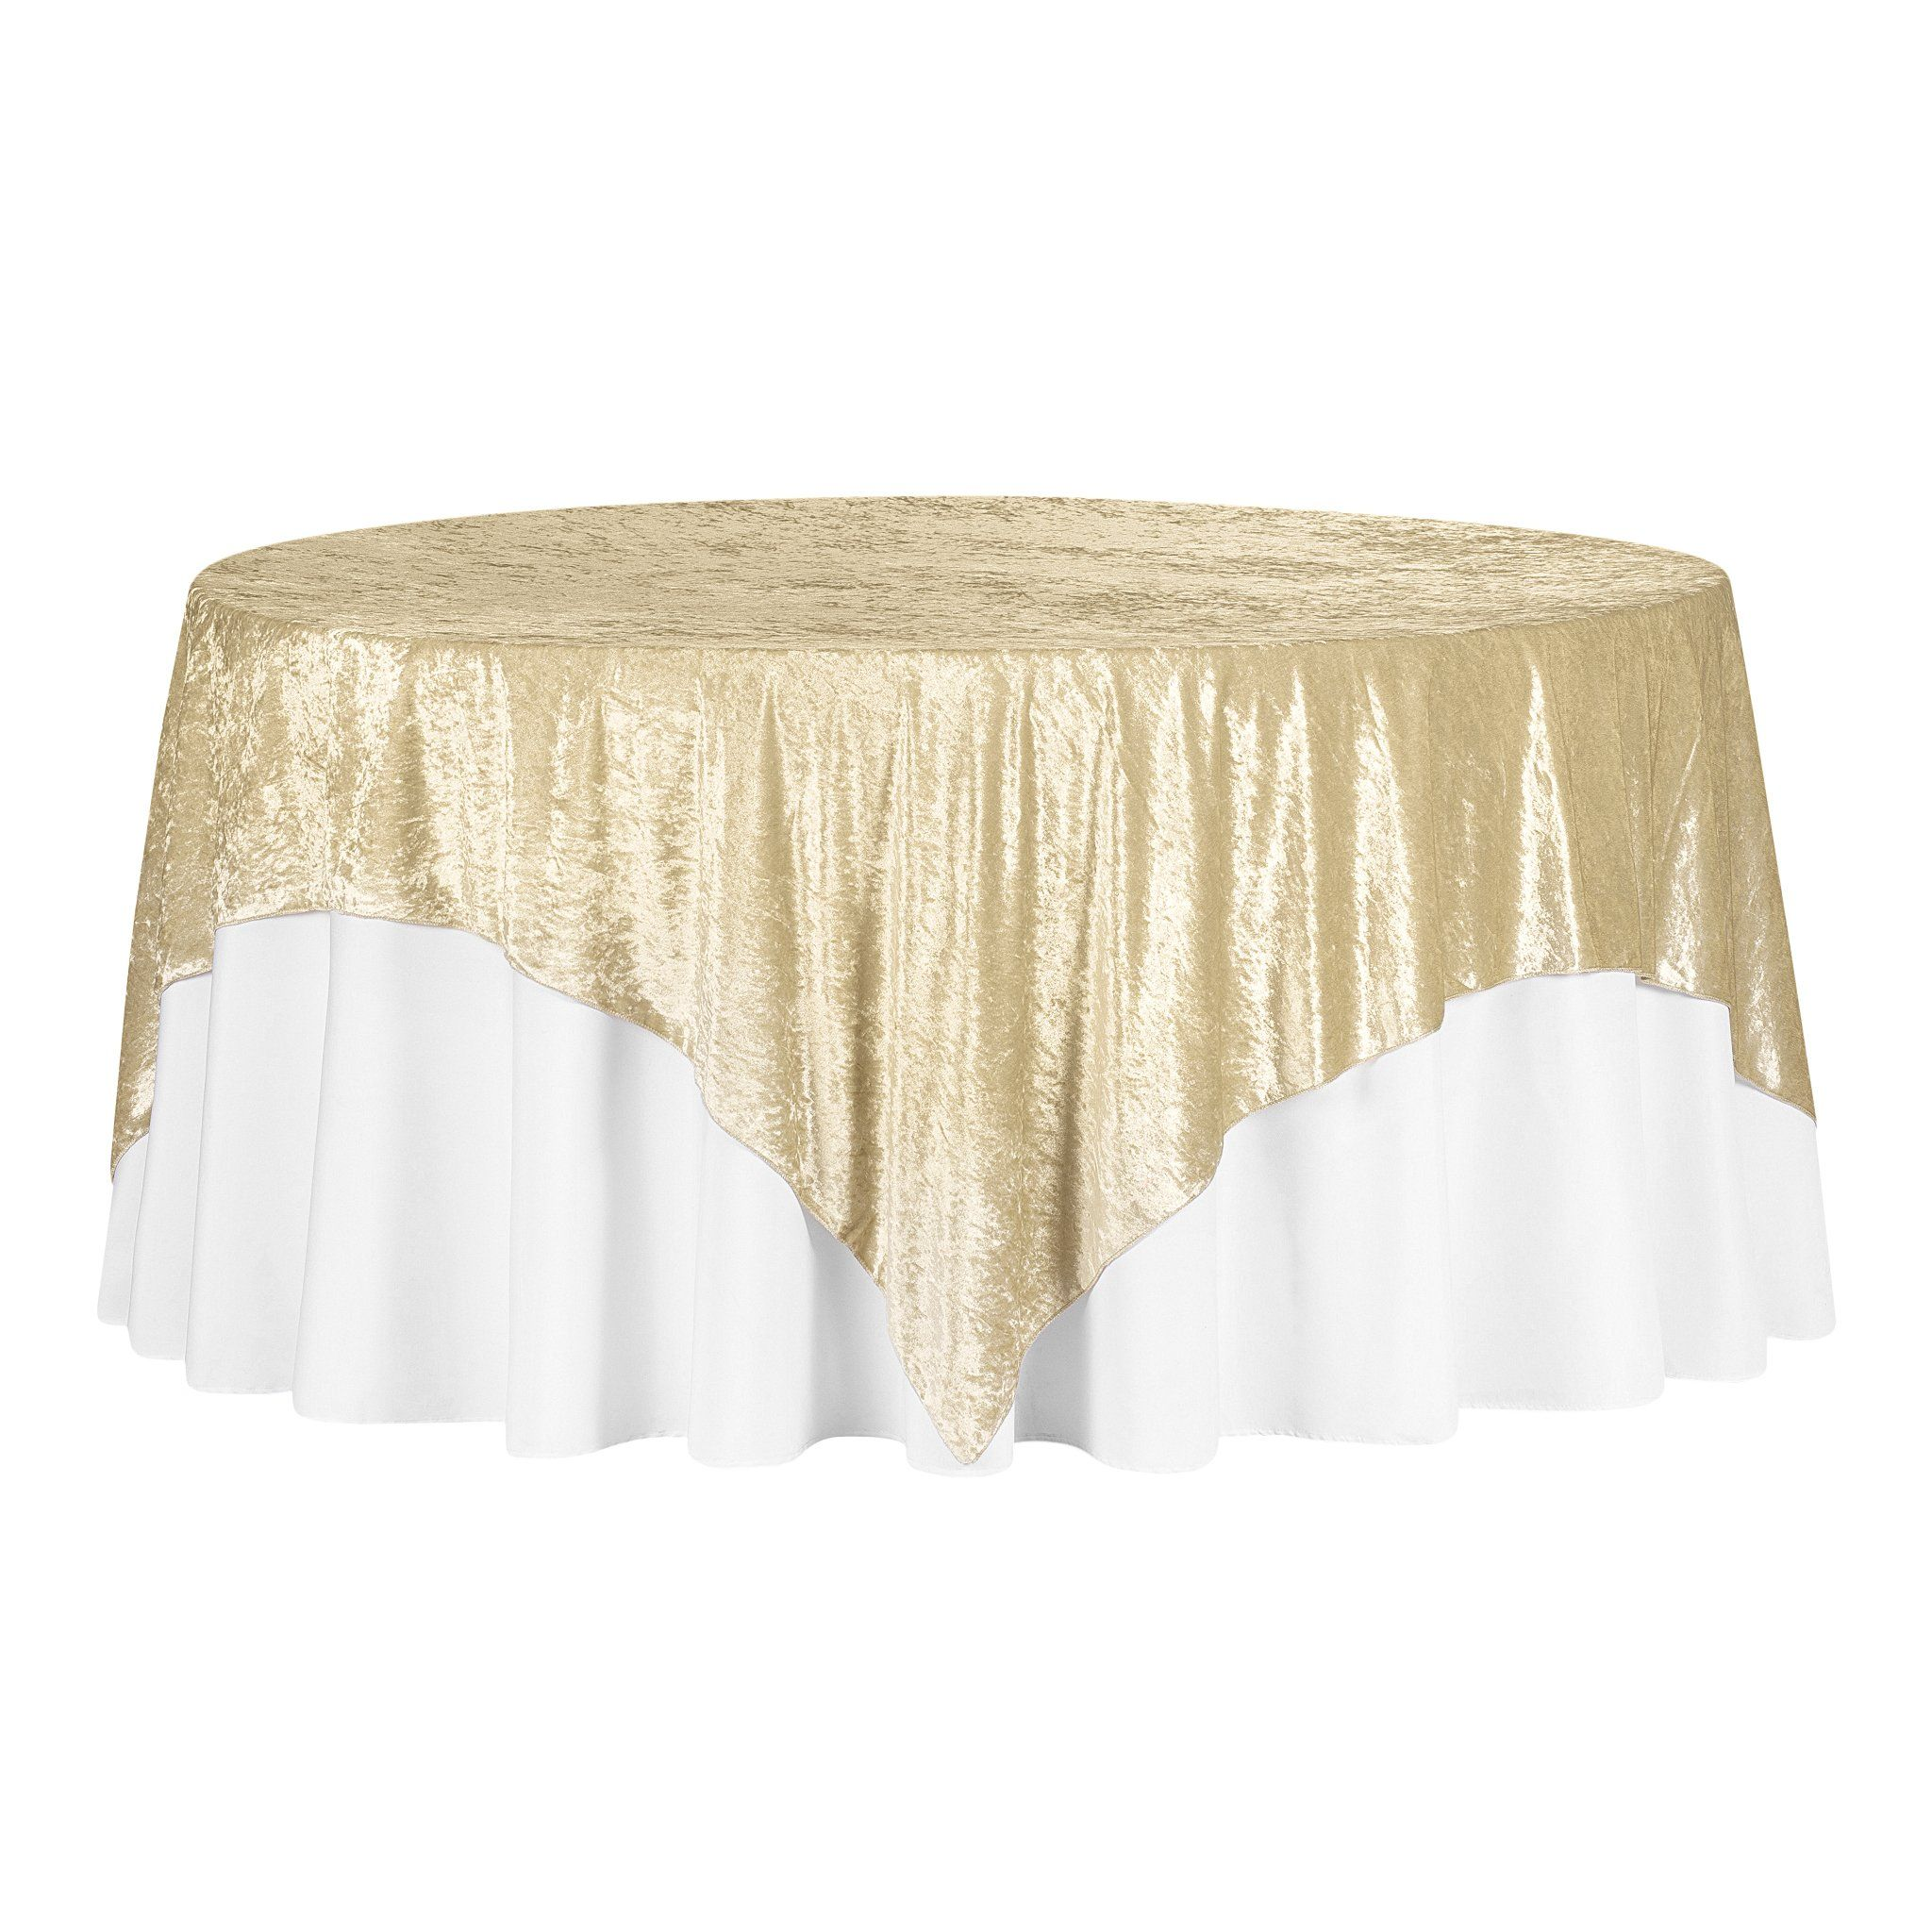 """Velvet 85""""x85"""" Square Tablecloth Table Overlay - Champagne"""